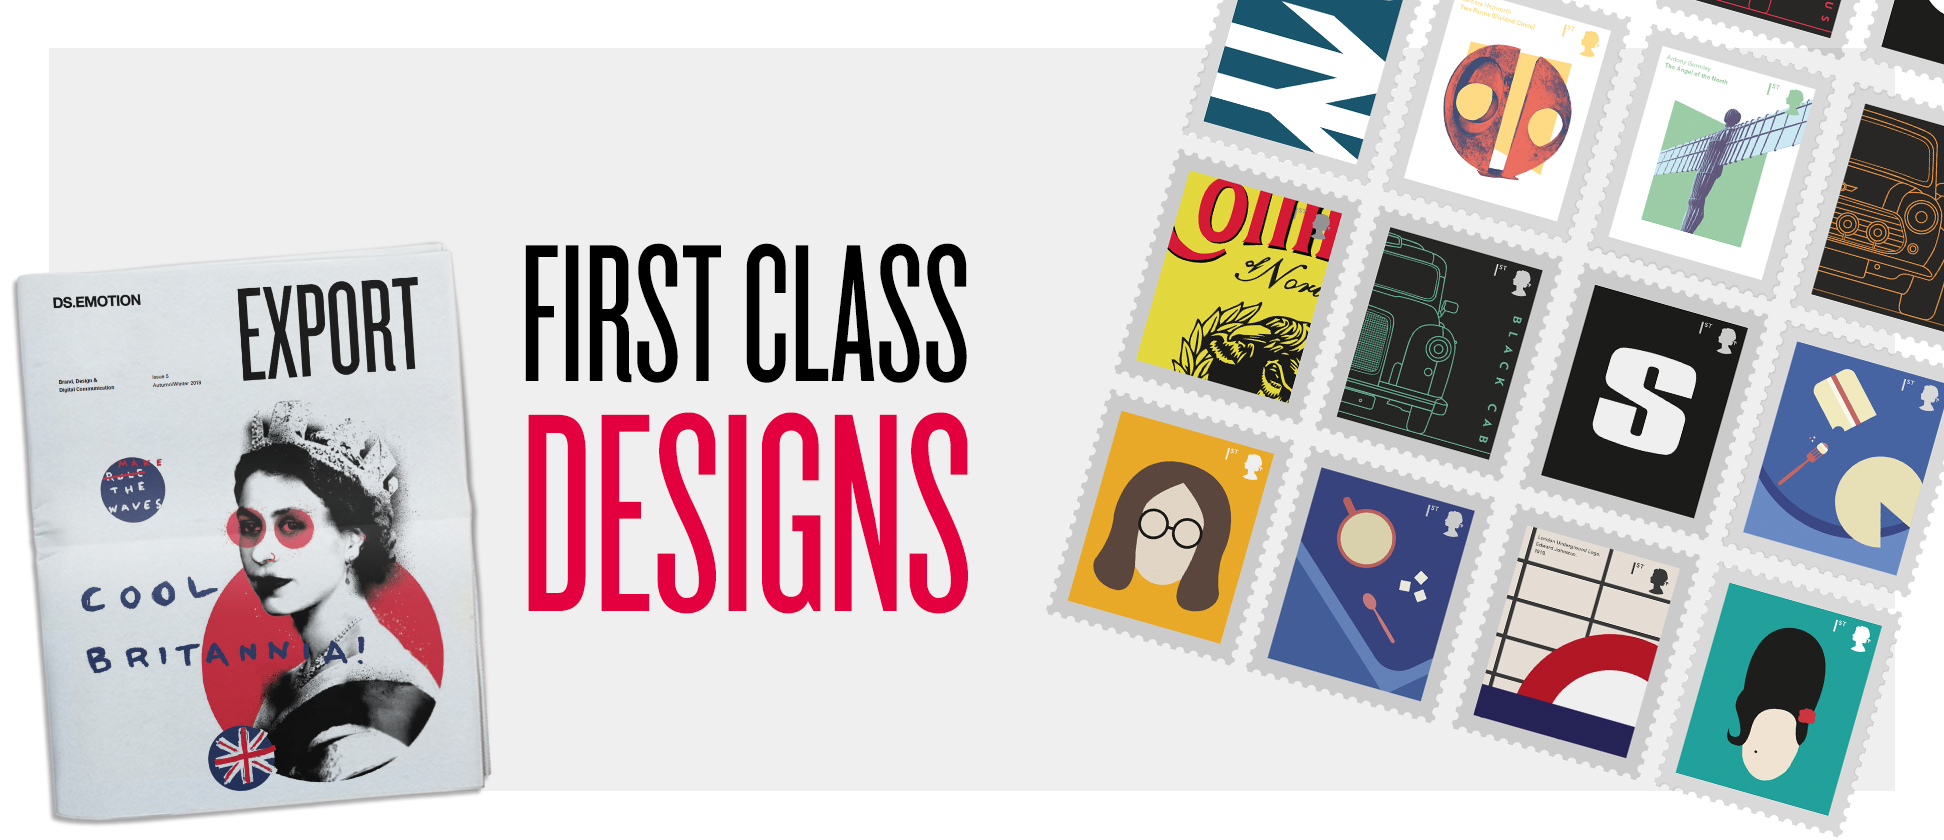 EXPORT: First Class Designs